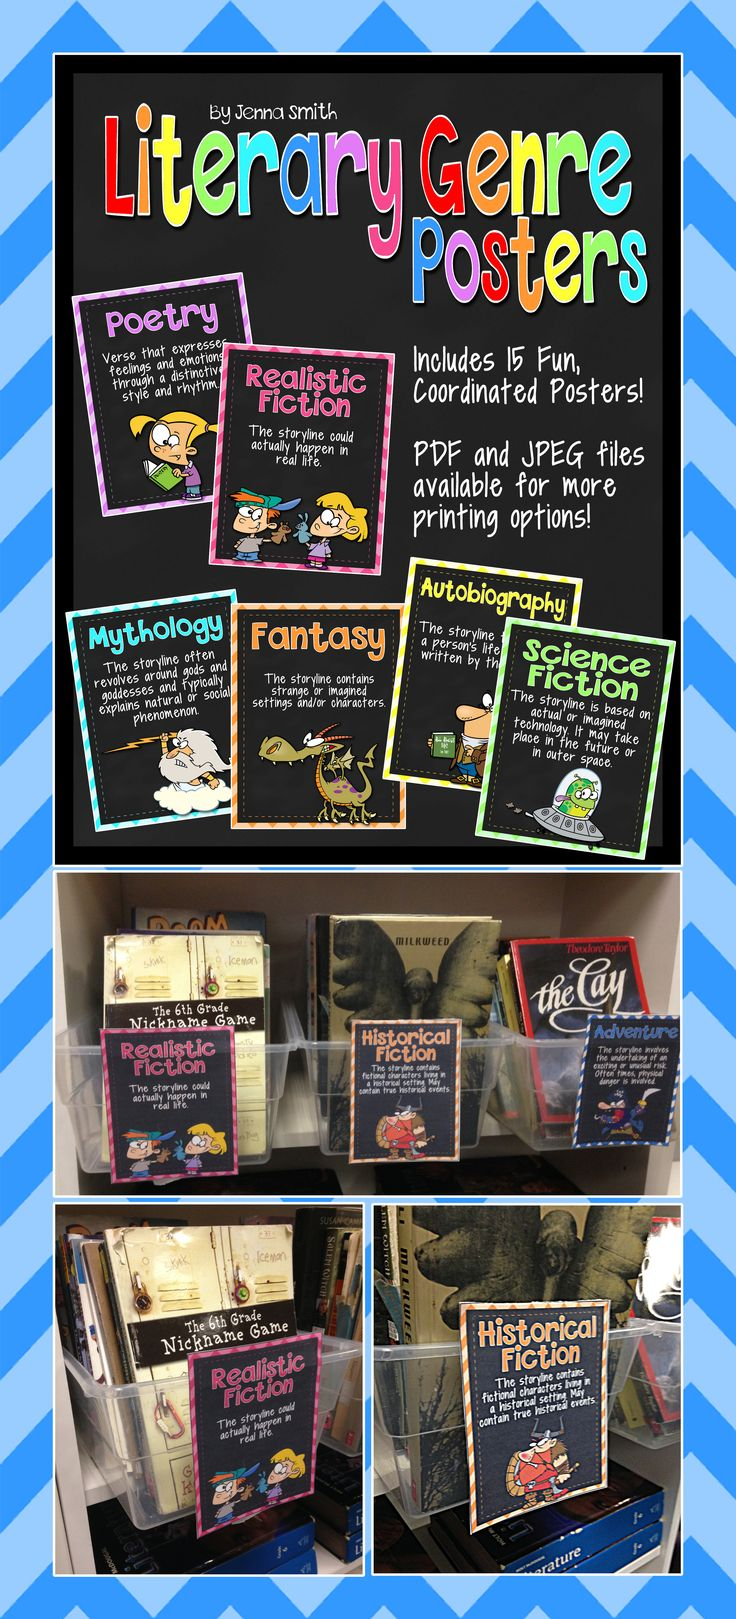 Use these Literary Genre Posters to make book bins for your classroom library!!